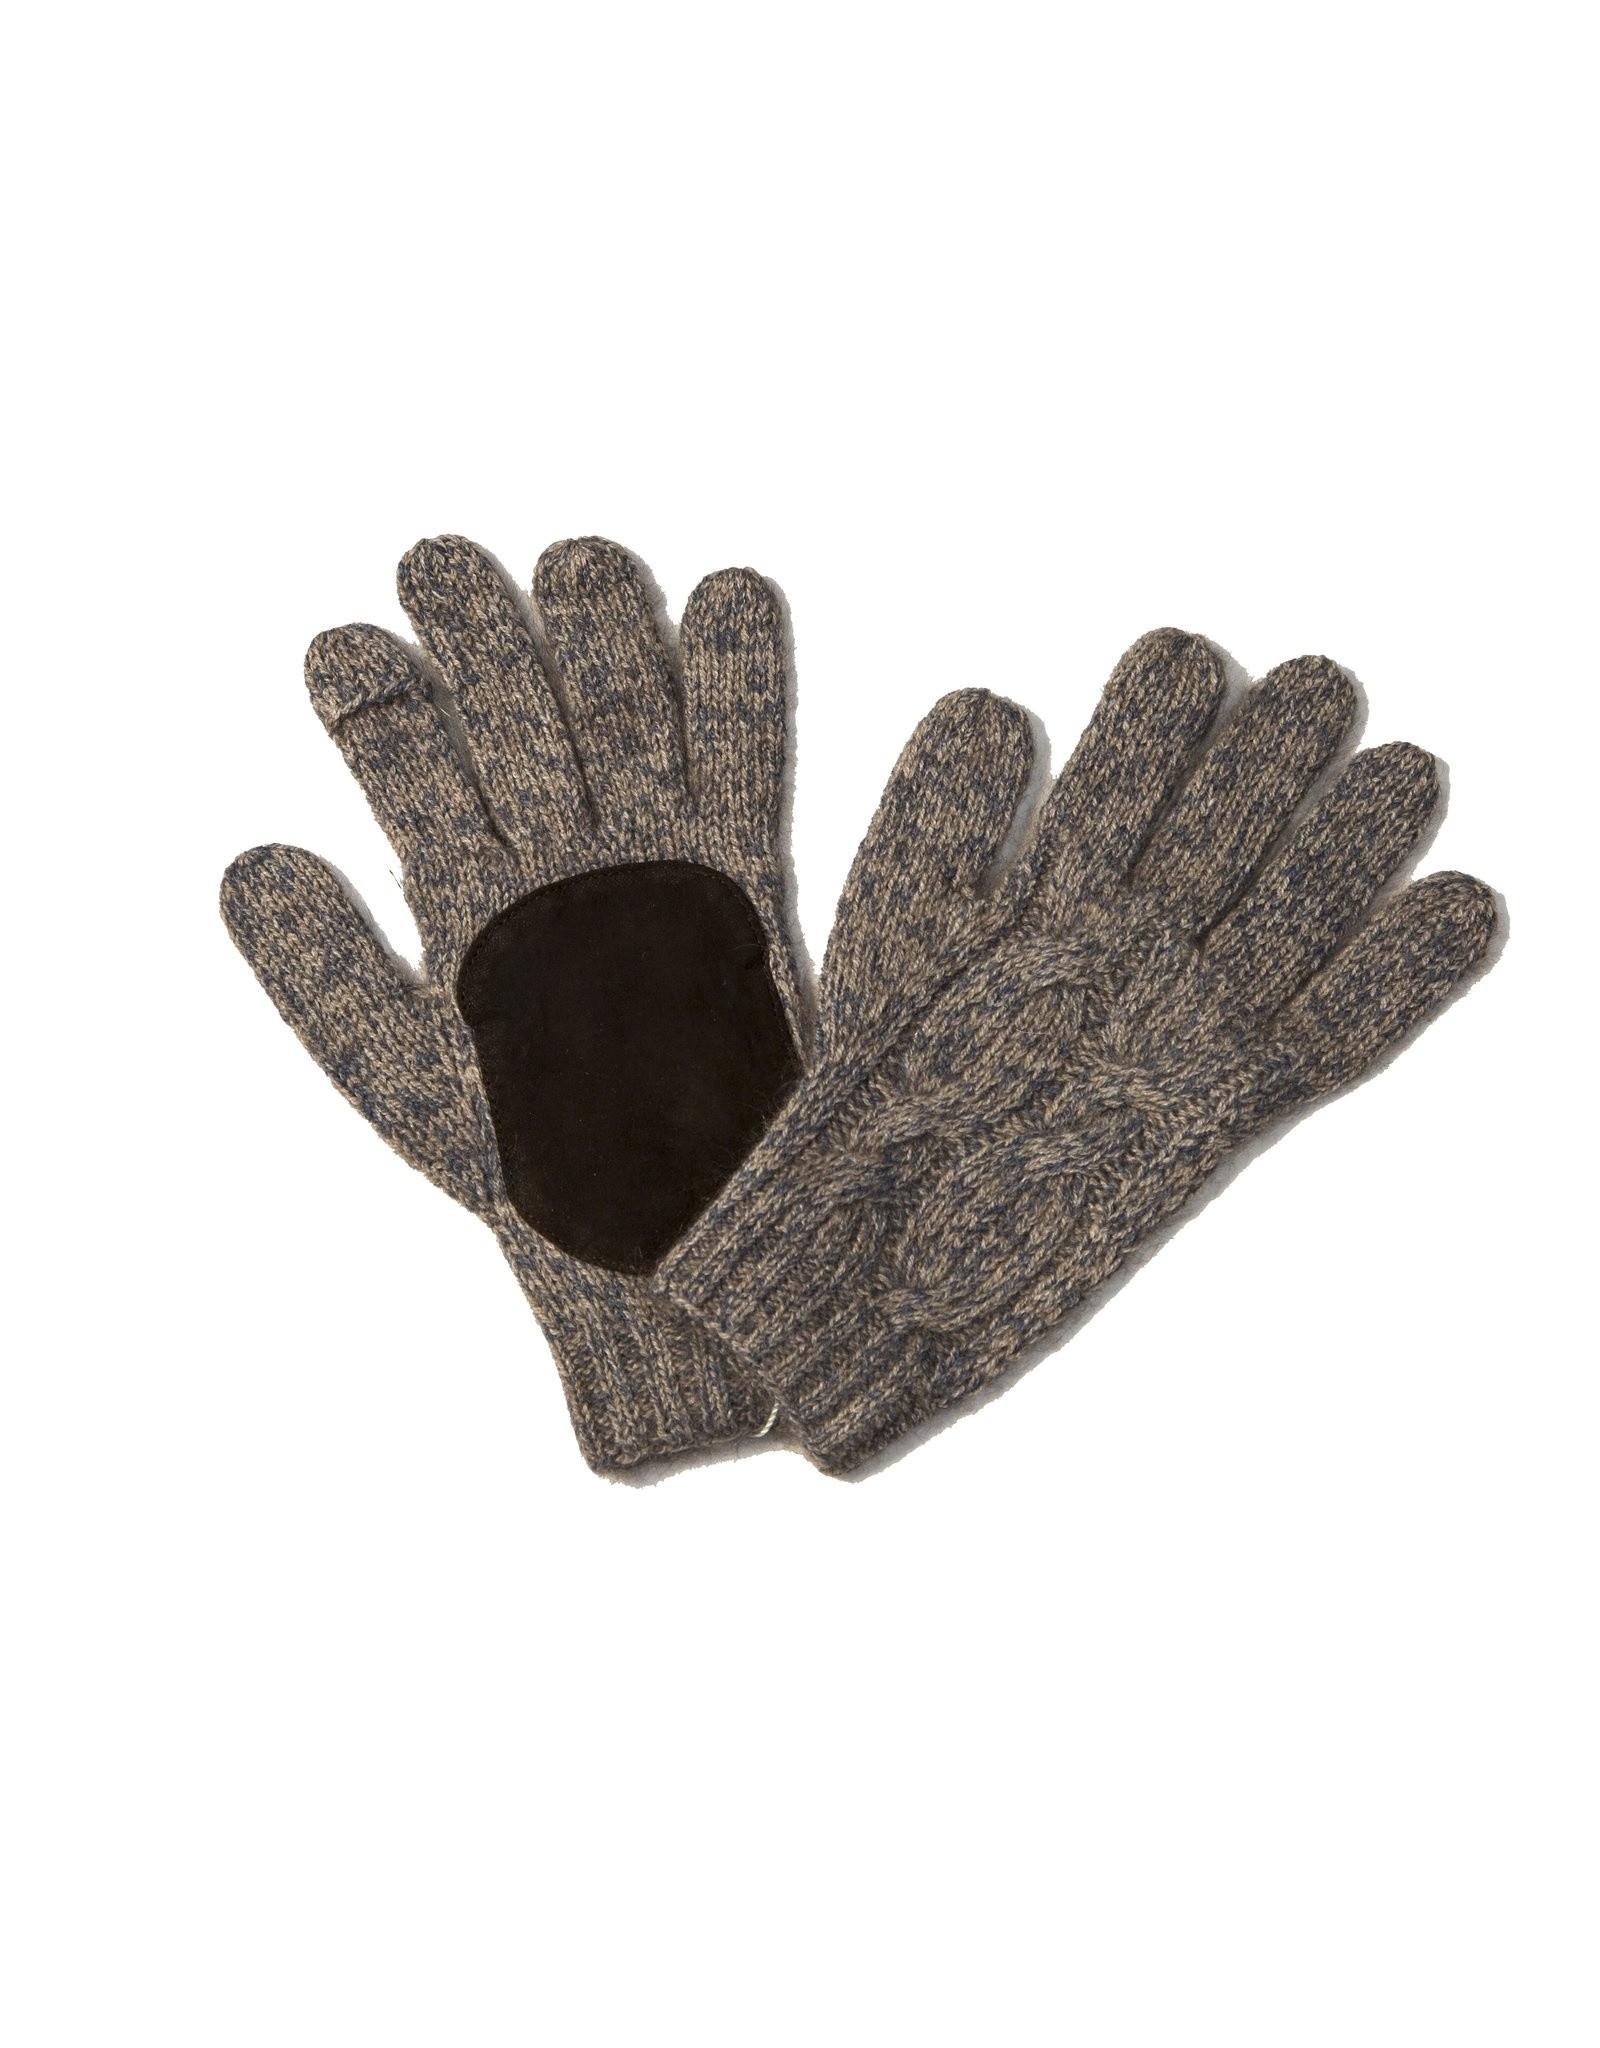 Robert Gloves - 45% Qiviuk 45% Merino 10% Silk